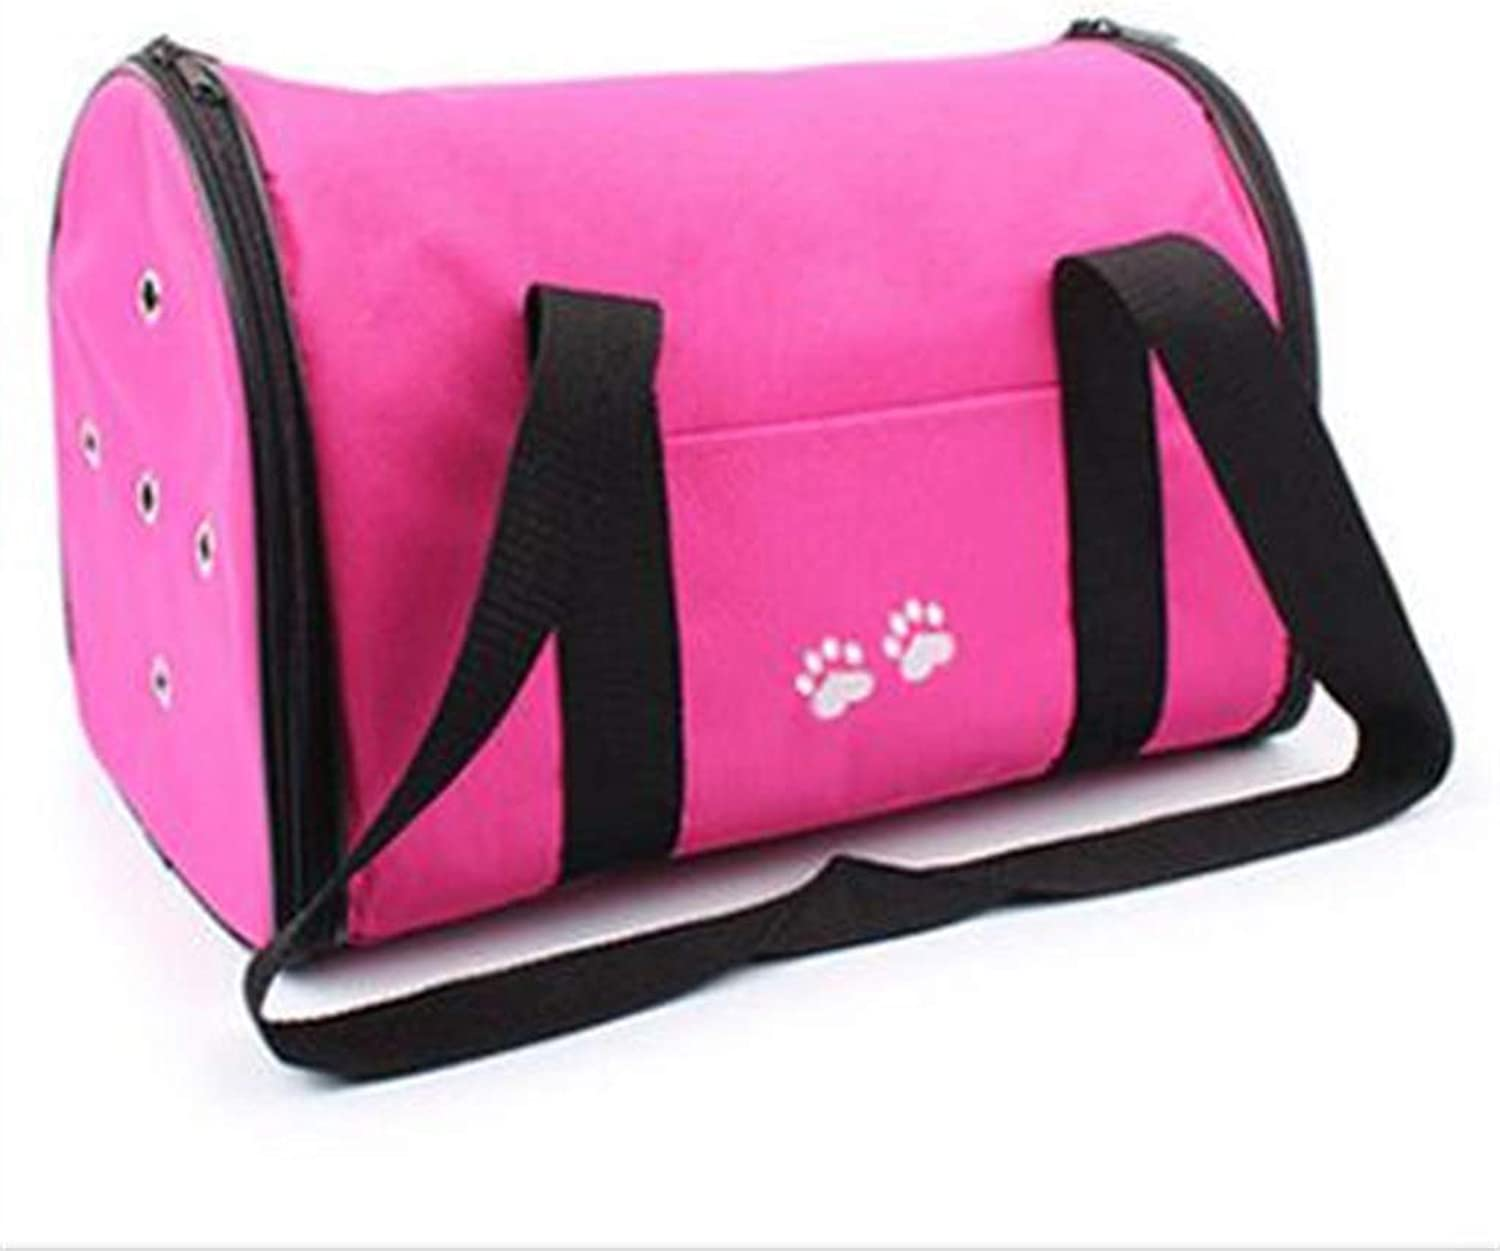 Pet Single Shoulder Bag Full Enclosed, Portable Oxford Cloth Footprint Fabric, Teddy Outbound Travel Bag, Cat Cage Pet Supplies Pink